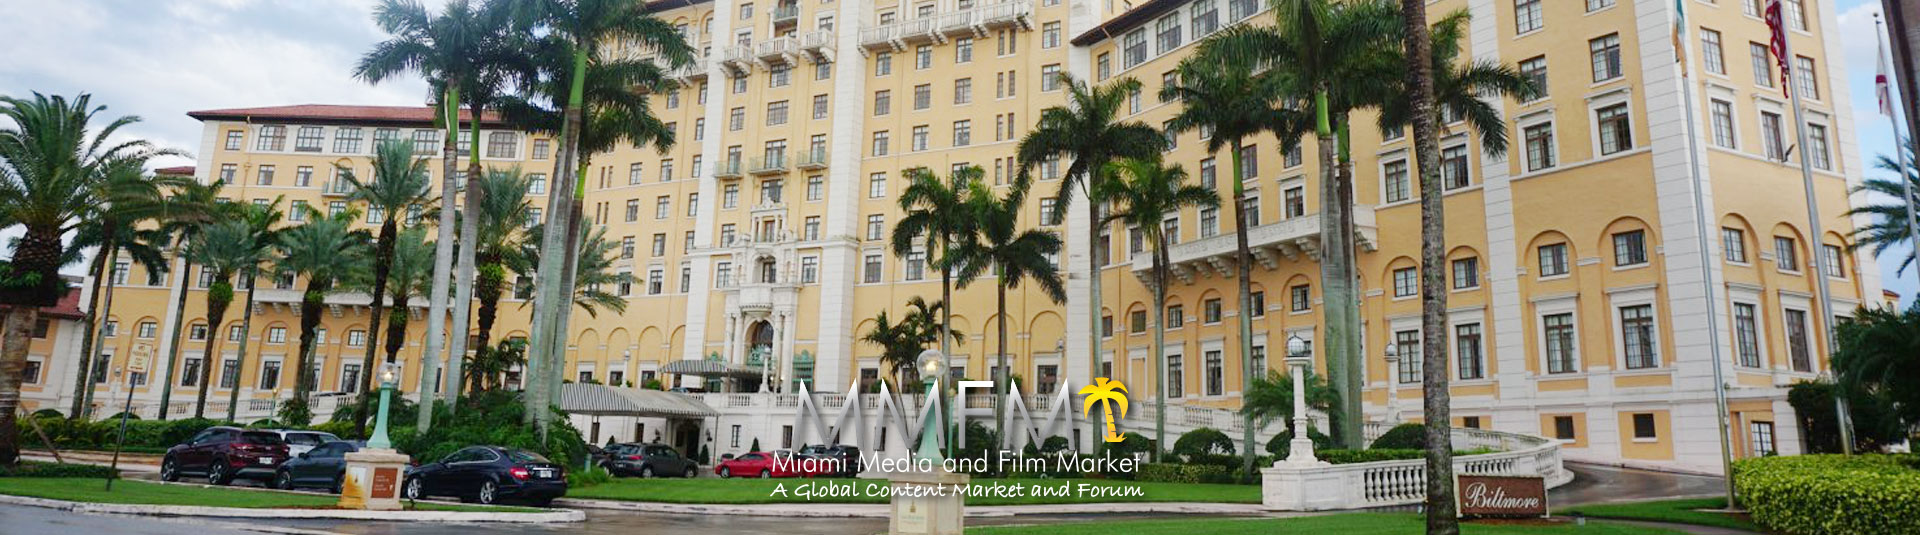 Miami Media and Film Market